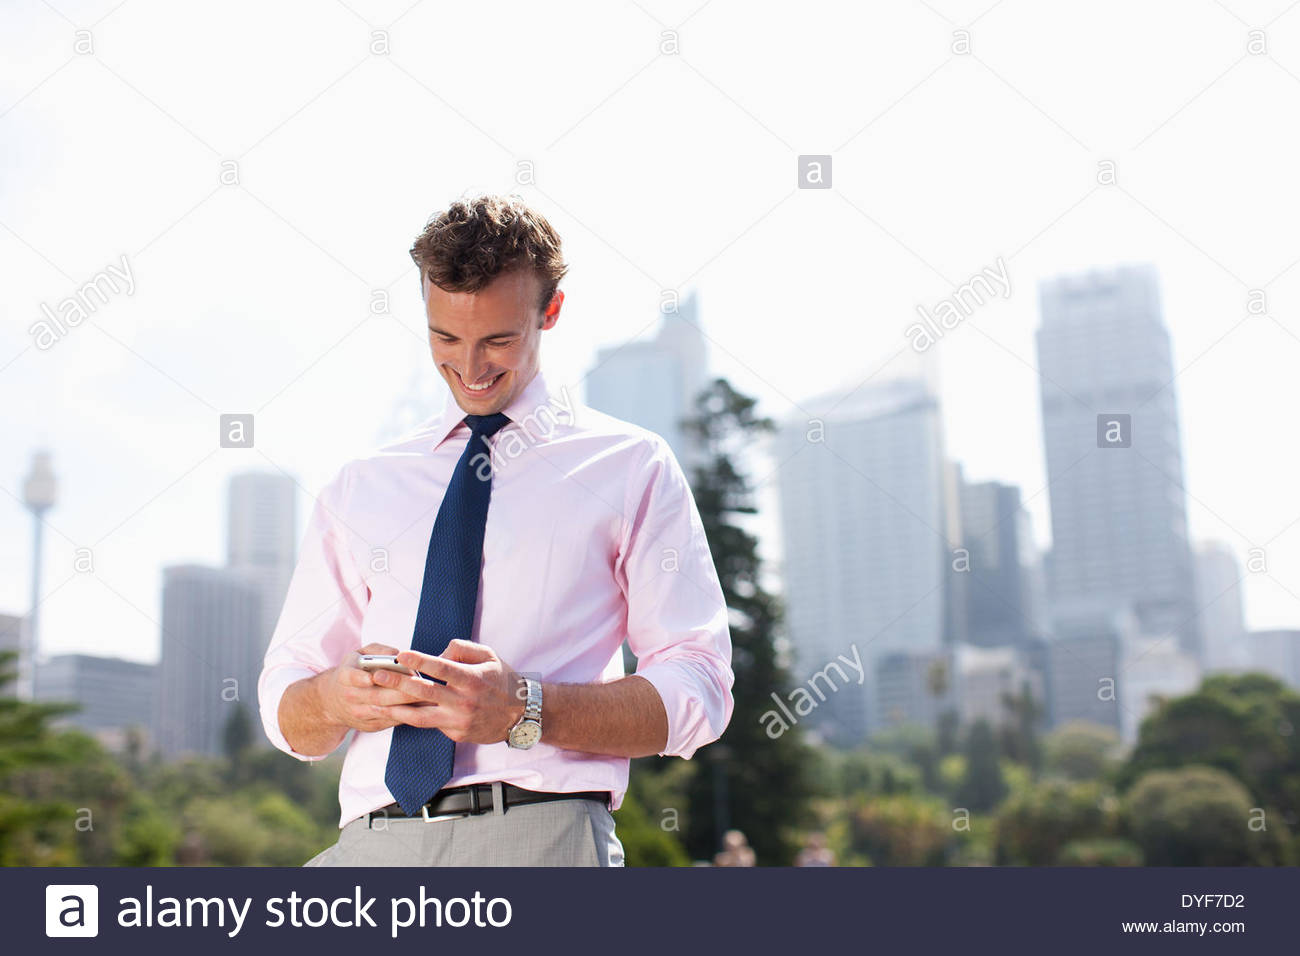 Businessman text messaging on cell phone outdoors - Stock Image